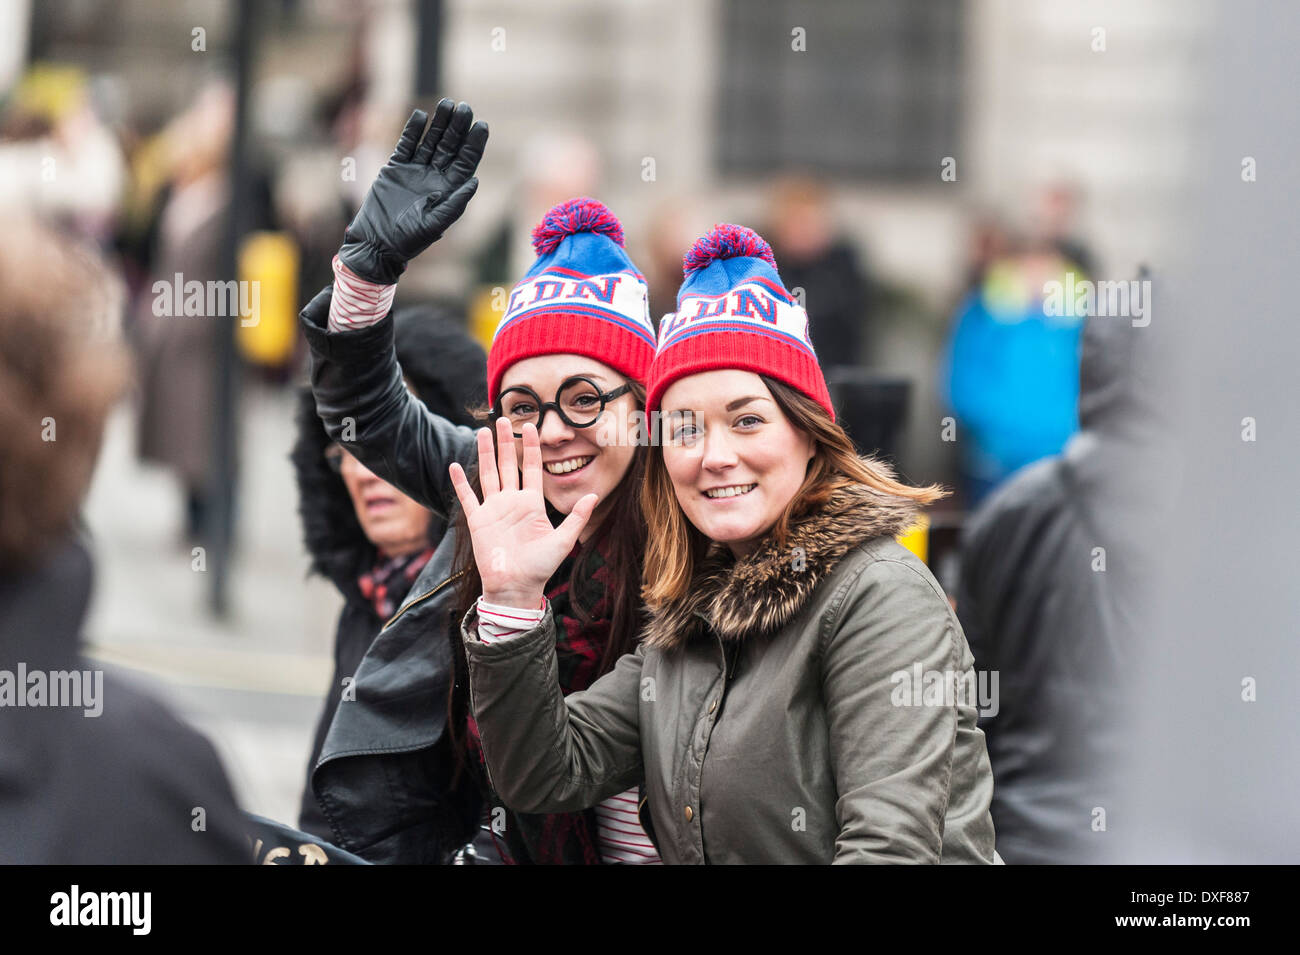 Colourful Hats Stock Photos Images Alamy Winter Hat Wh 94 Tourists Wearing I Love London Image